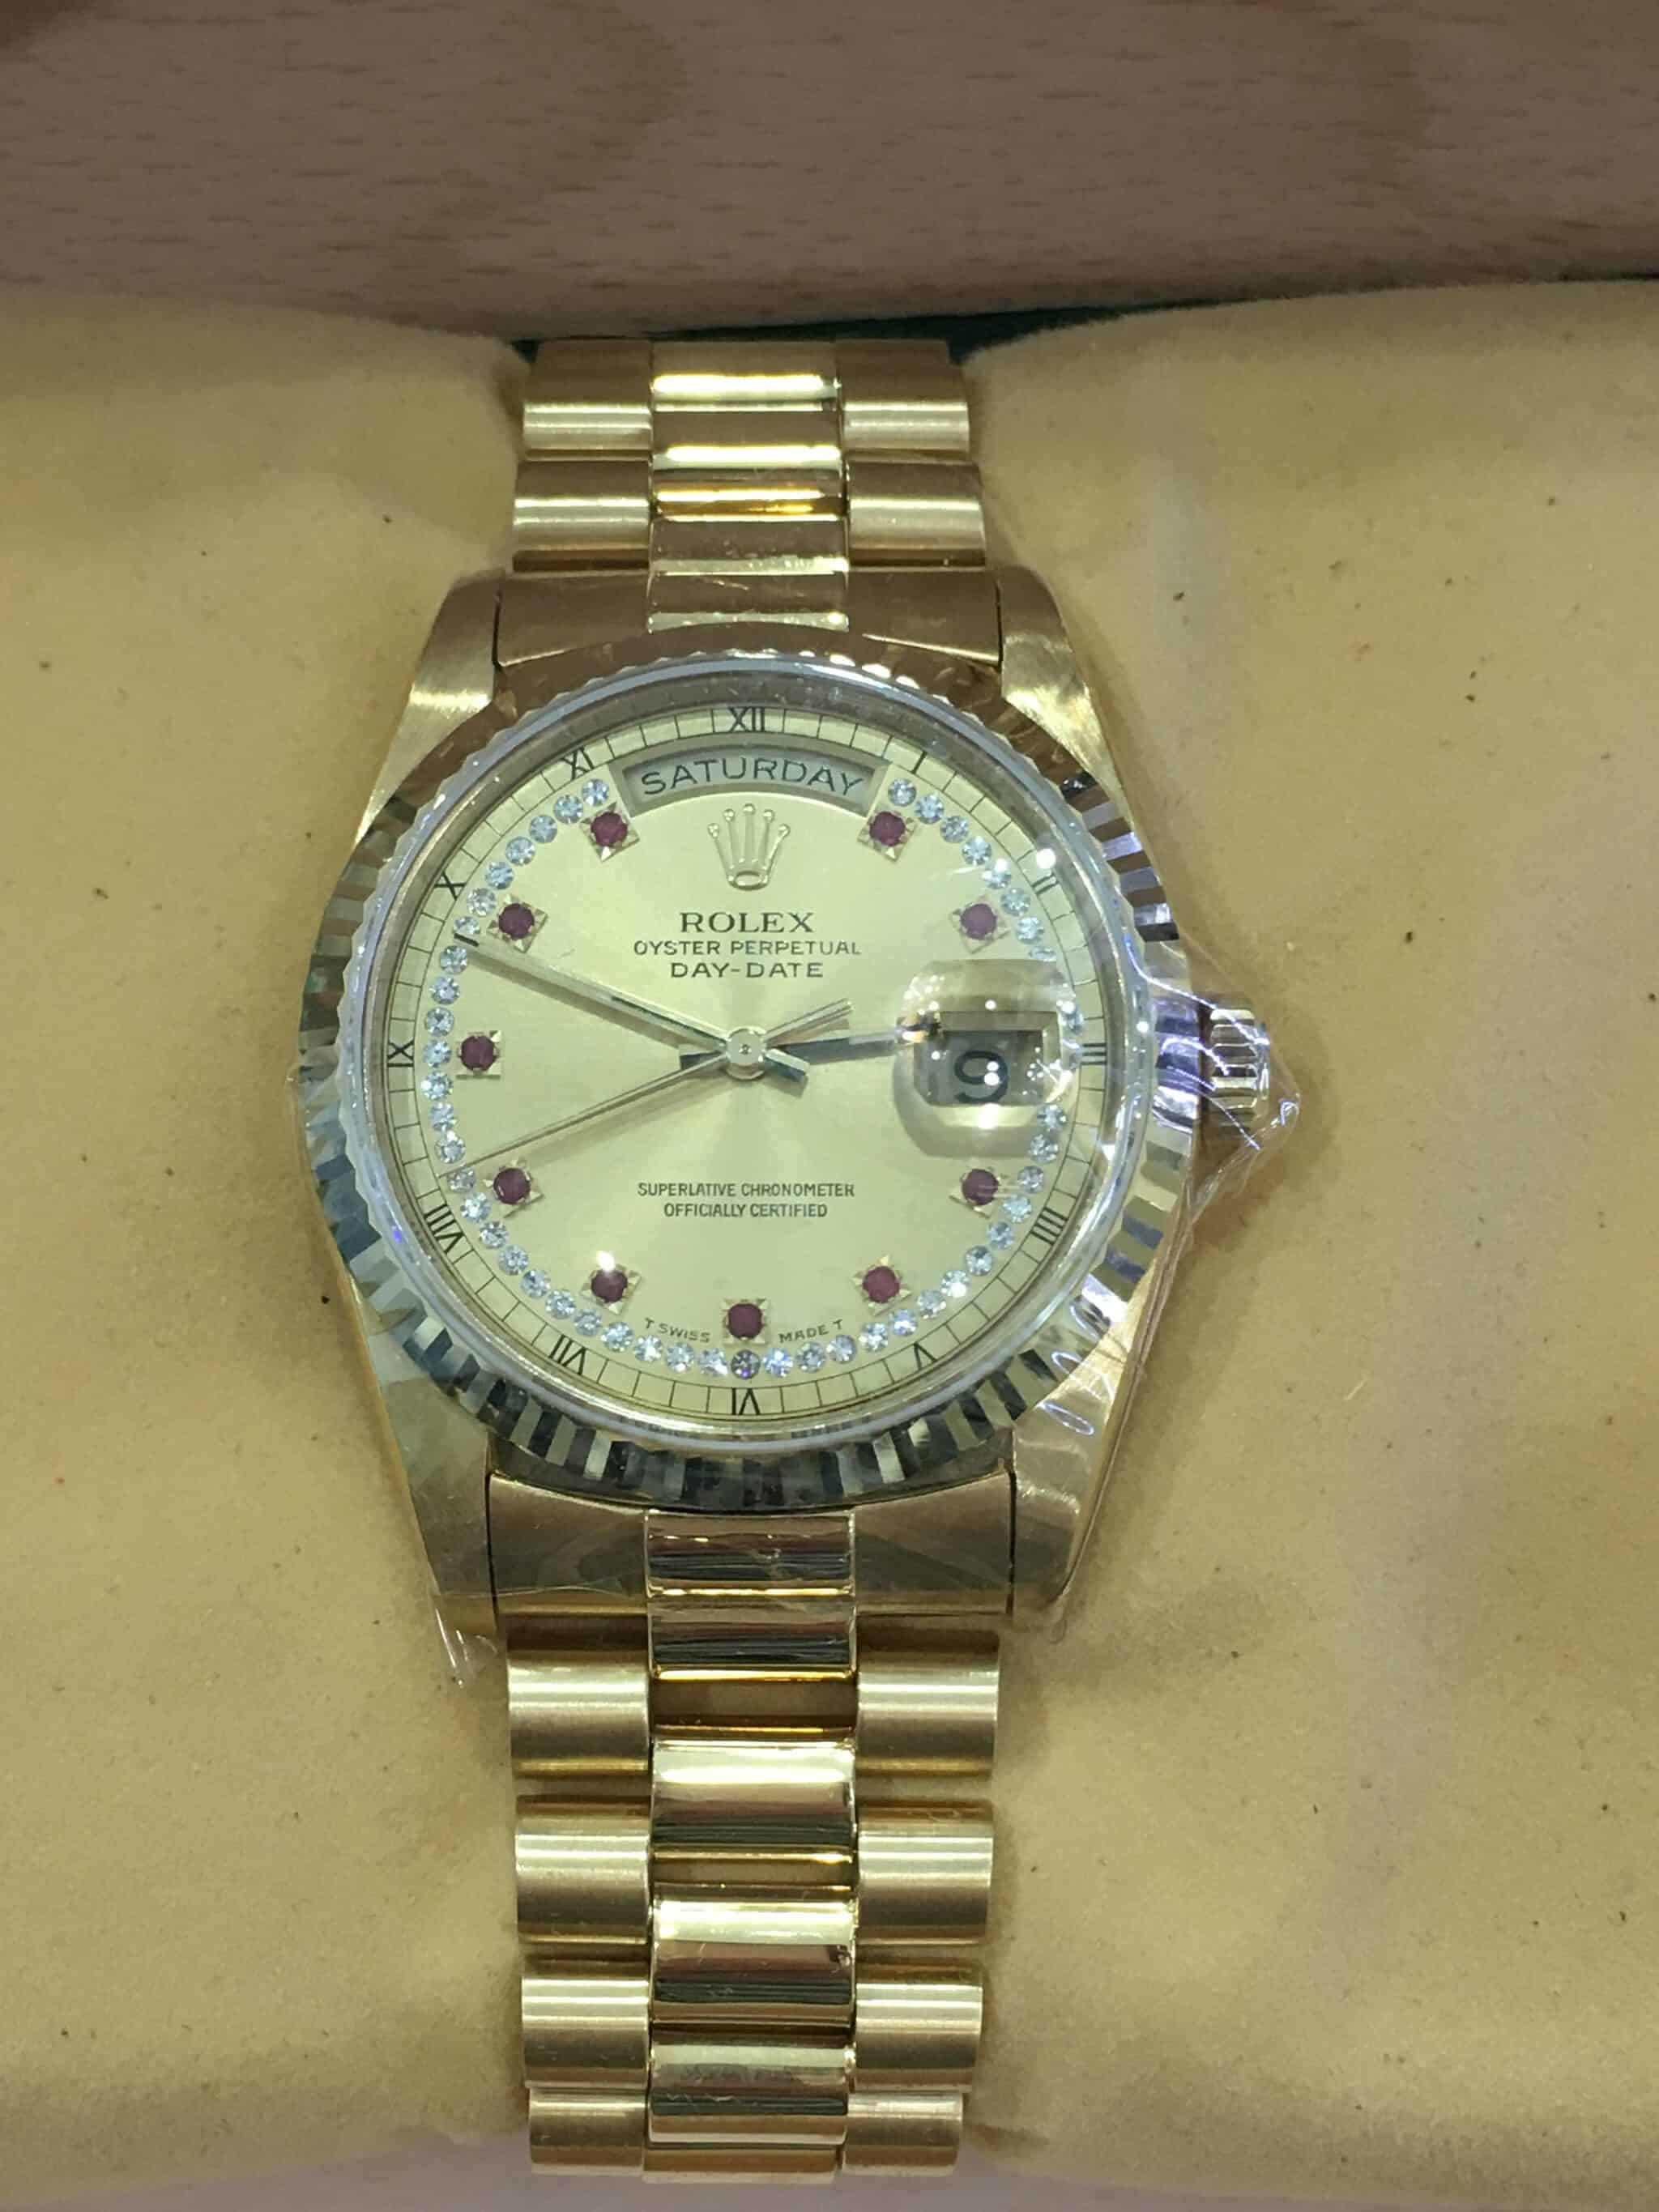 omega collecting threads more this pick a img ug can reasons great around the that market possible hamilton also college tudor up watch on in used watches and for it is these you think budget i